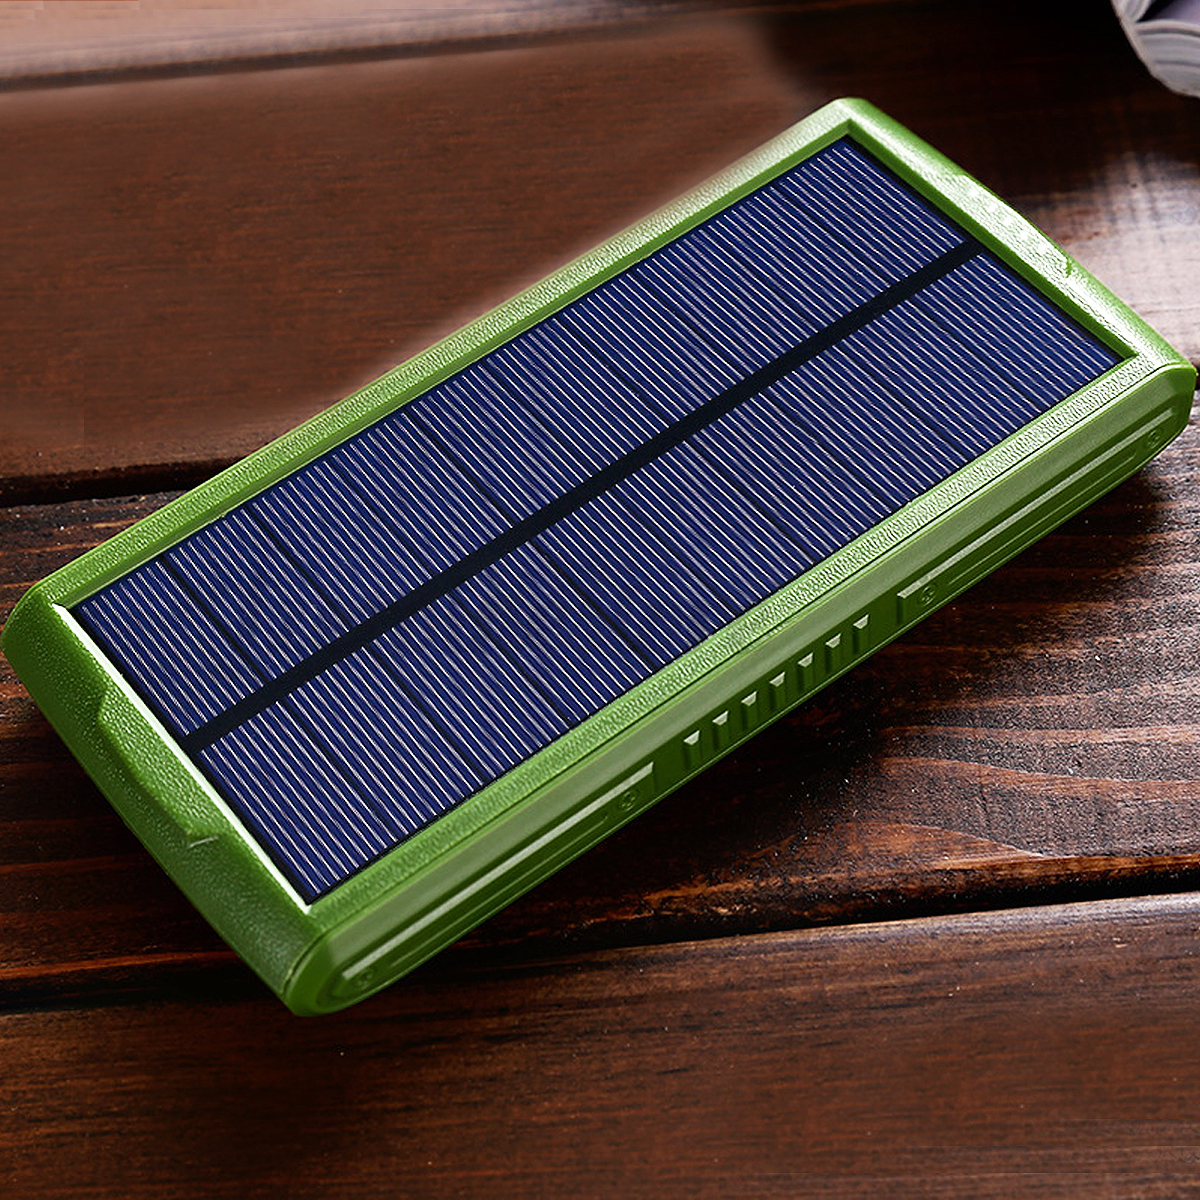 30000mah solar power bank 2 usb charger diy case for ipad. Black Bedroom Furniture Sets. Home Design Ideas